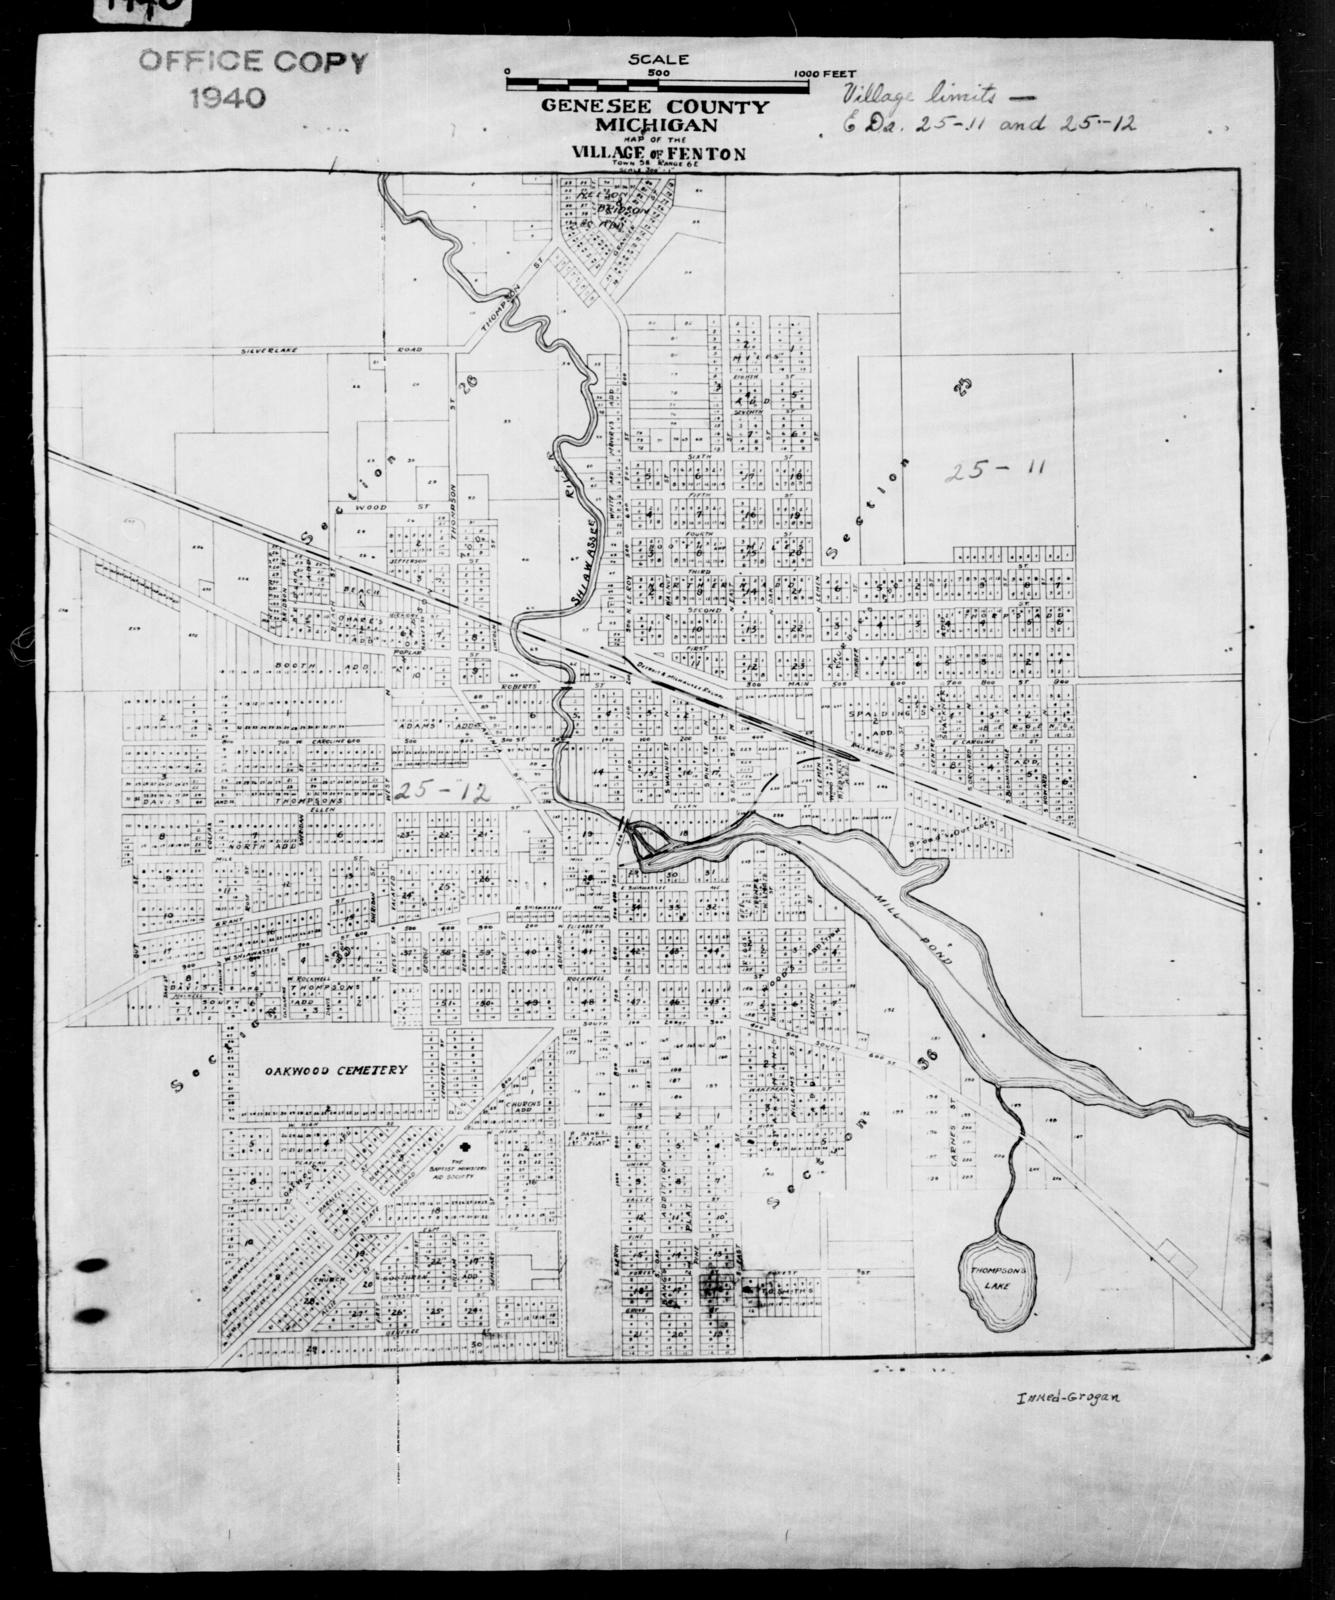 Us 12 Michigan Map.1940 Census Enumeration District Maps Michigan Genesee County